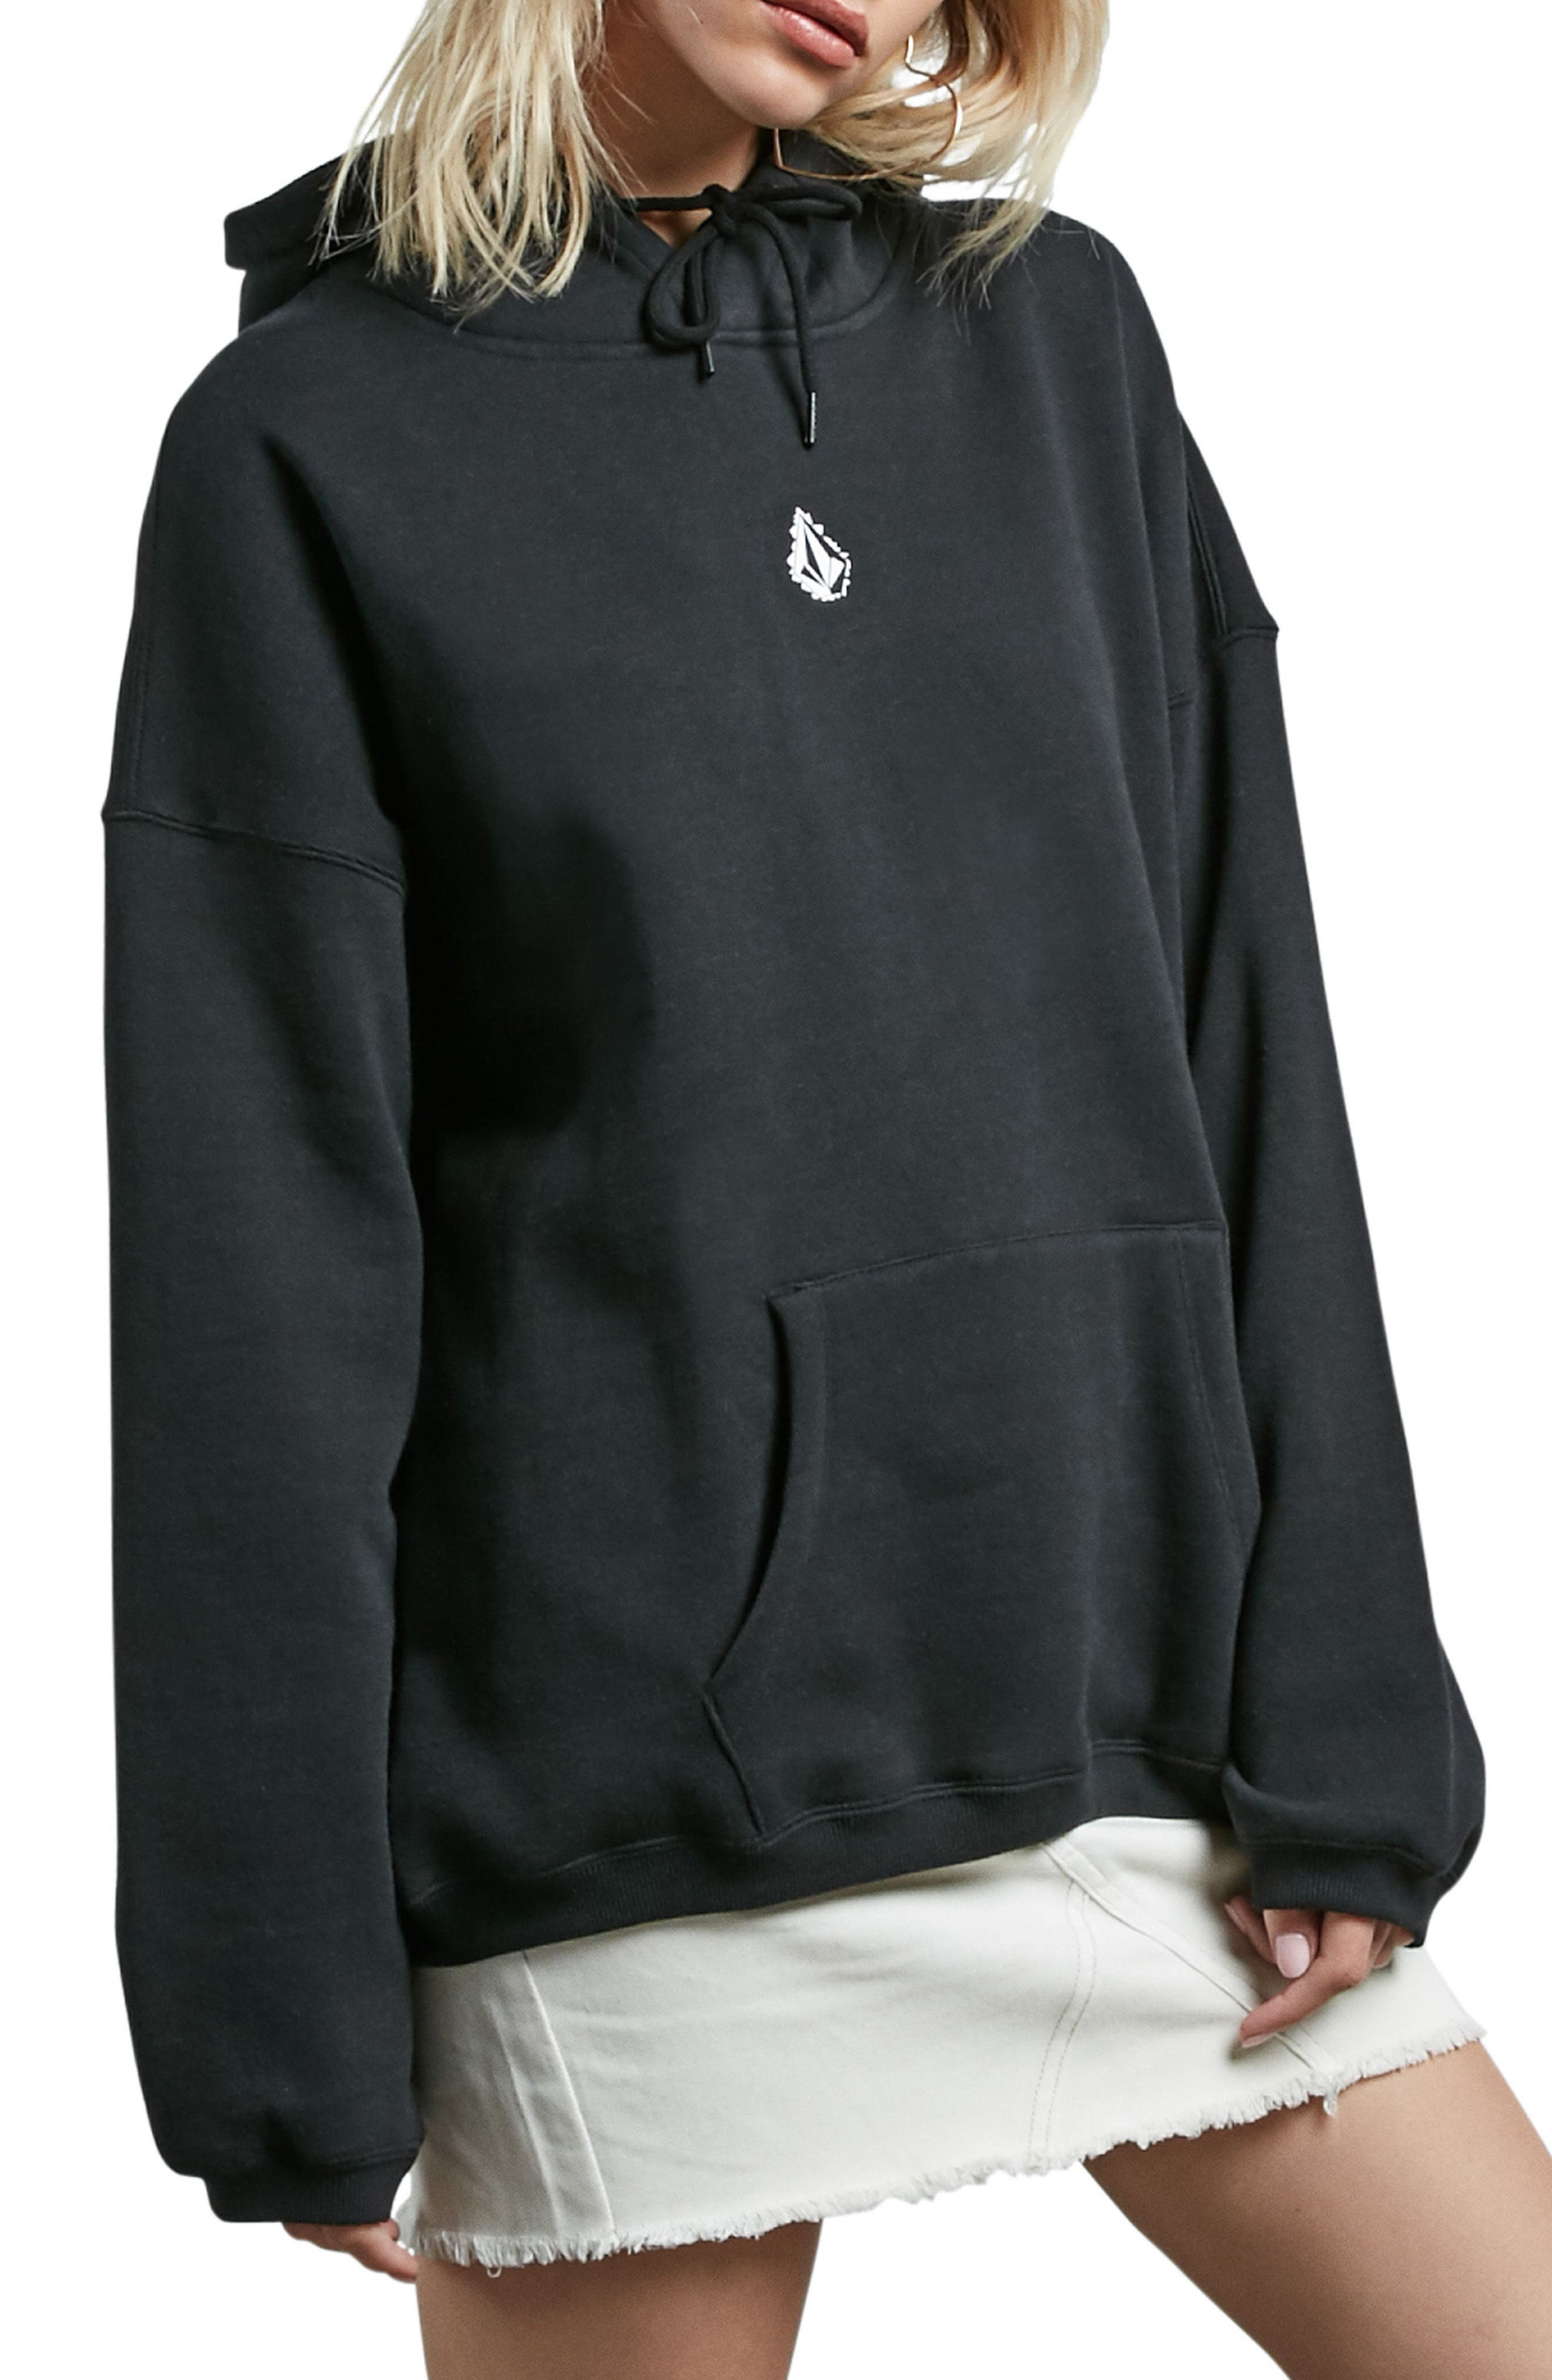 Roll It Up Hoodie,                         Main,                         color,